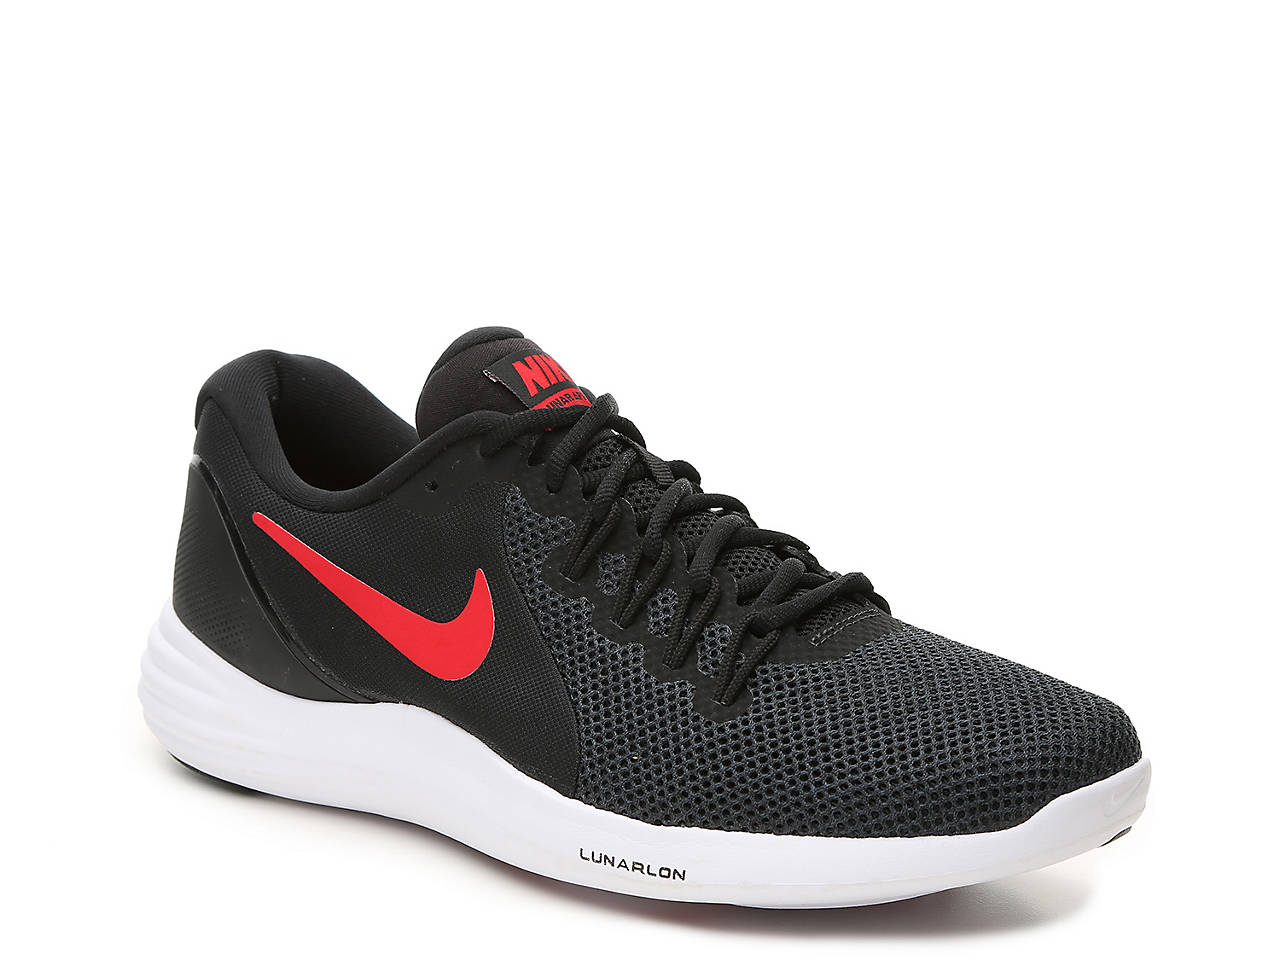 super popular a6c99 83038 Nike. Lunar Apparent Lightweight Running Shoe ...